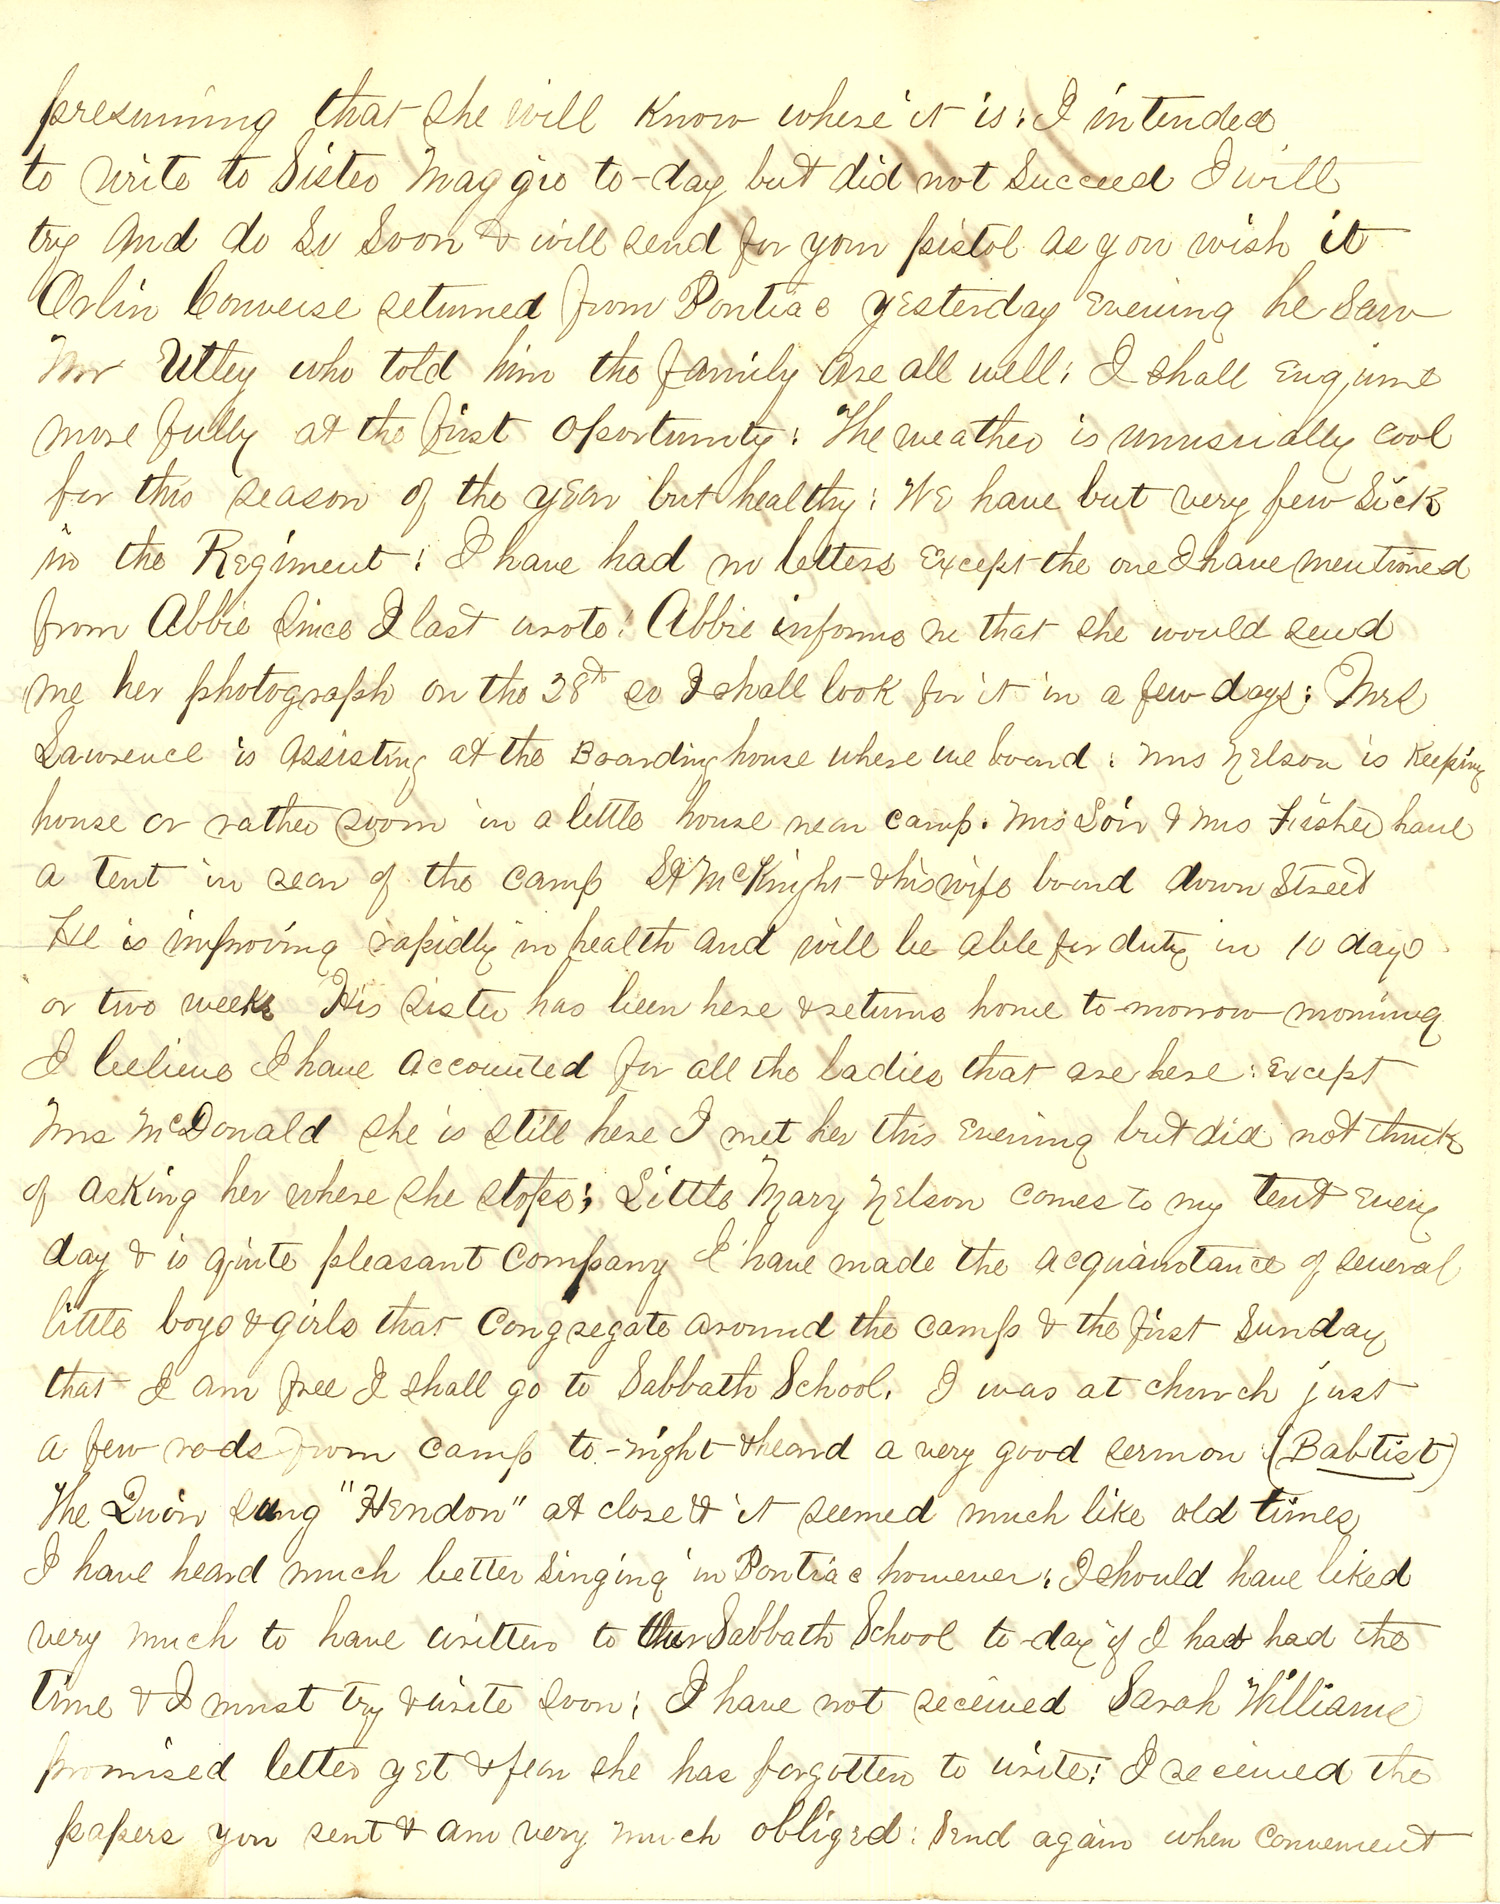 Joseph Culver Letter, August 30, 1863, Page 2